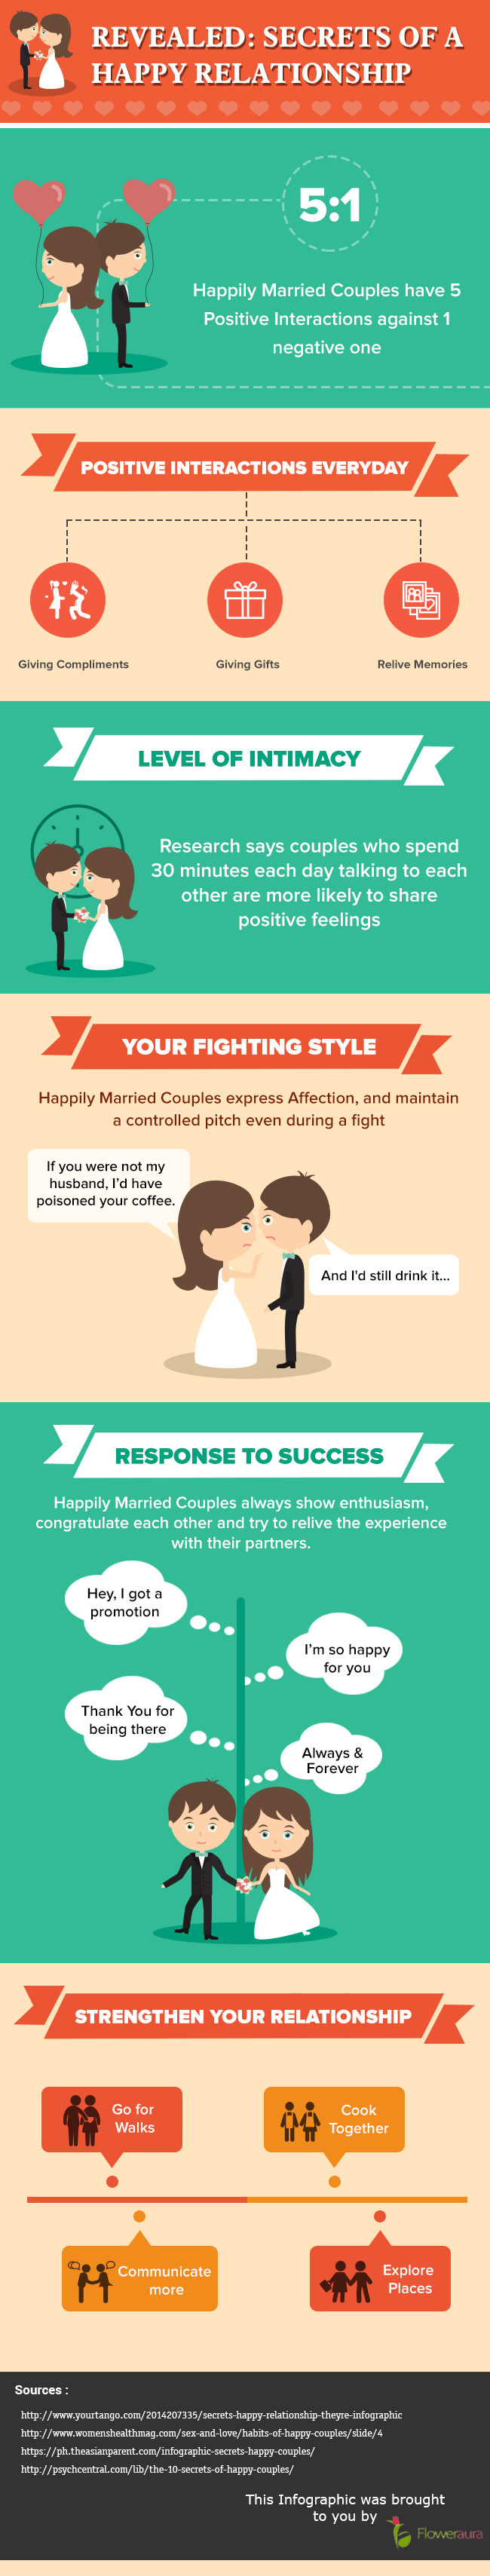 Secrets of a happy relationship